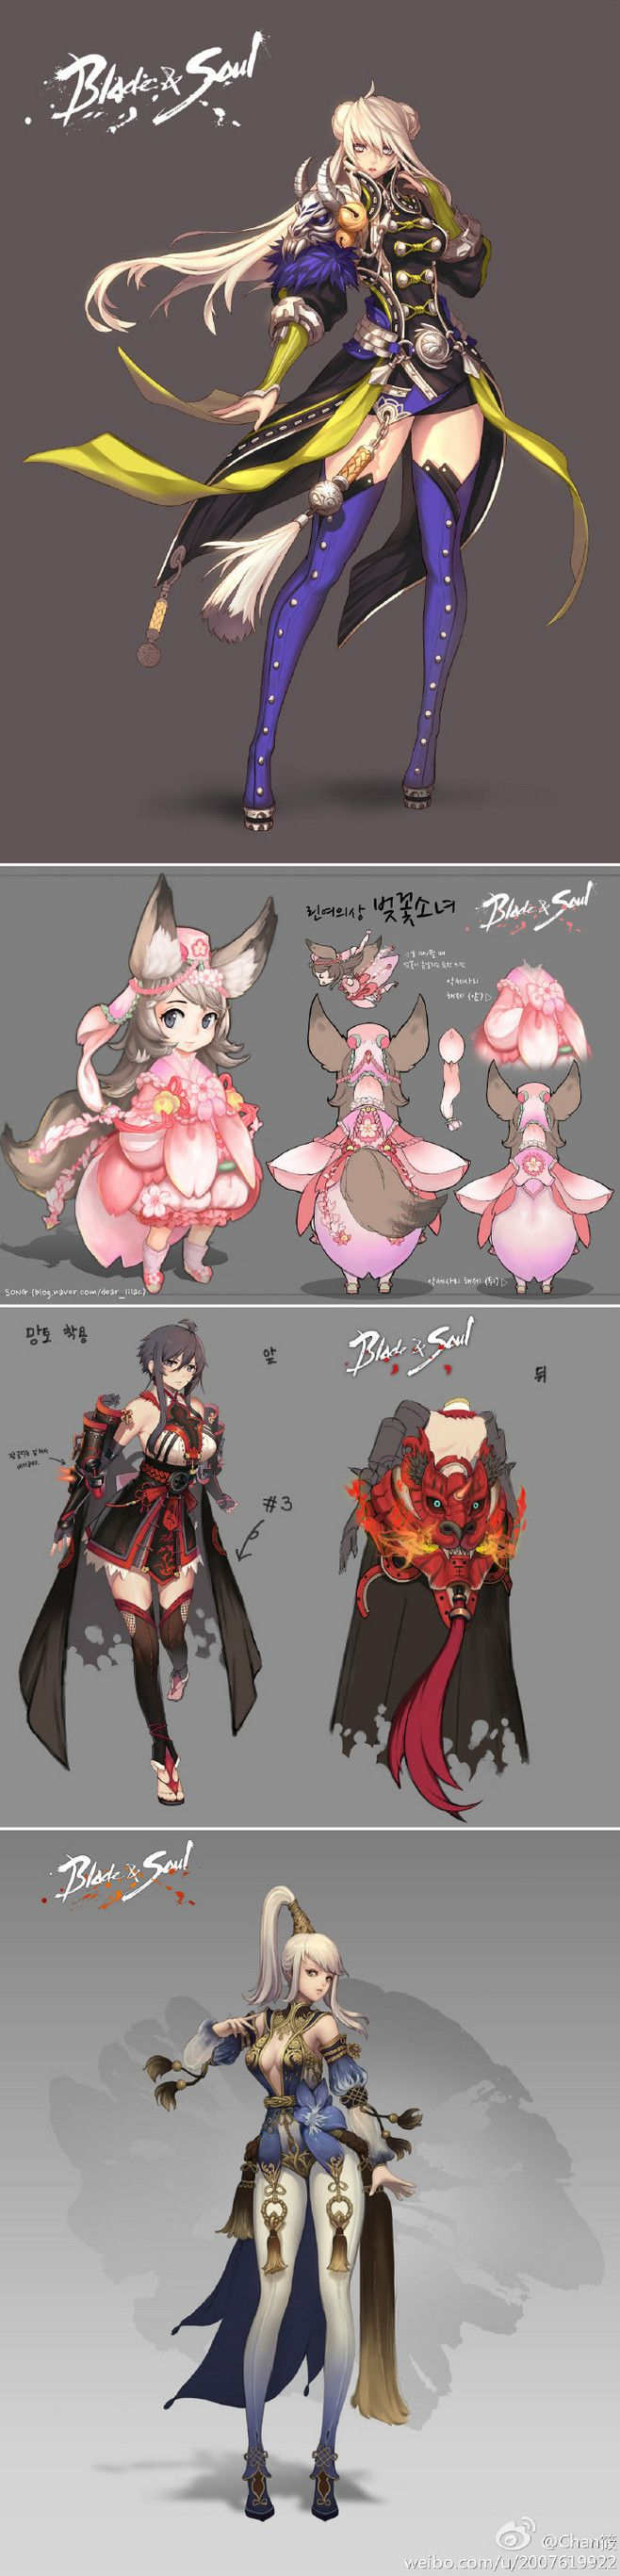 The second chara design it's so cute